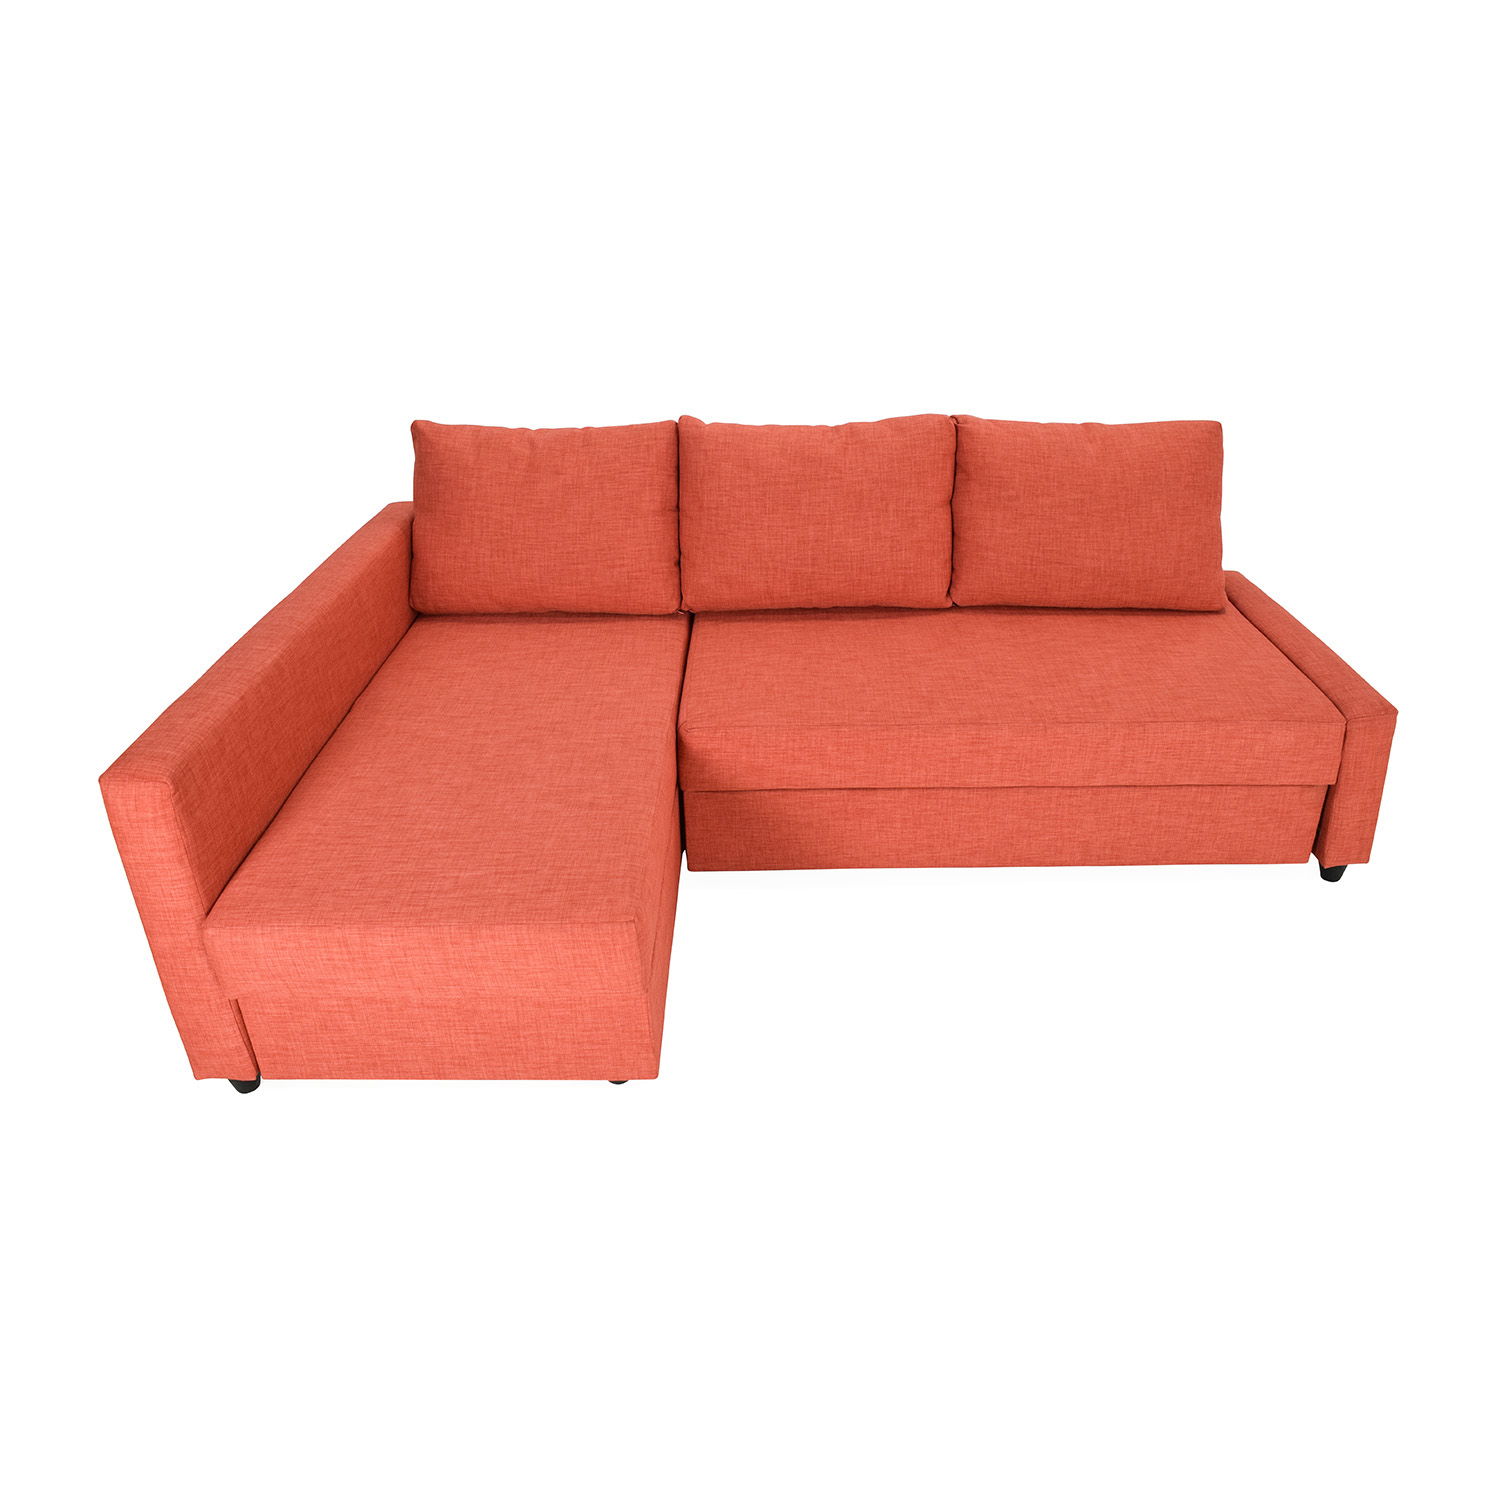 FRIHETEN Sofa bed with chaise sale